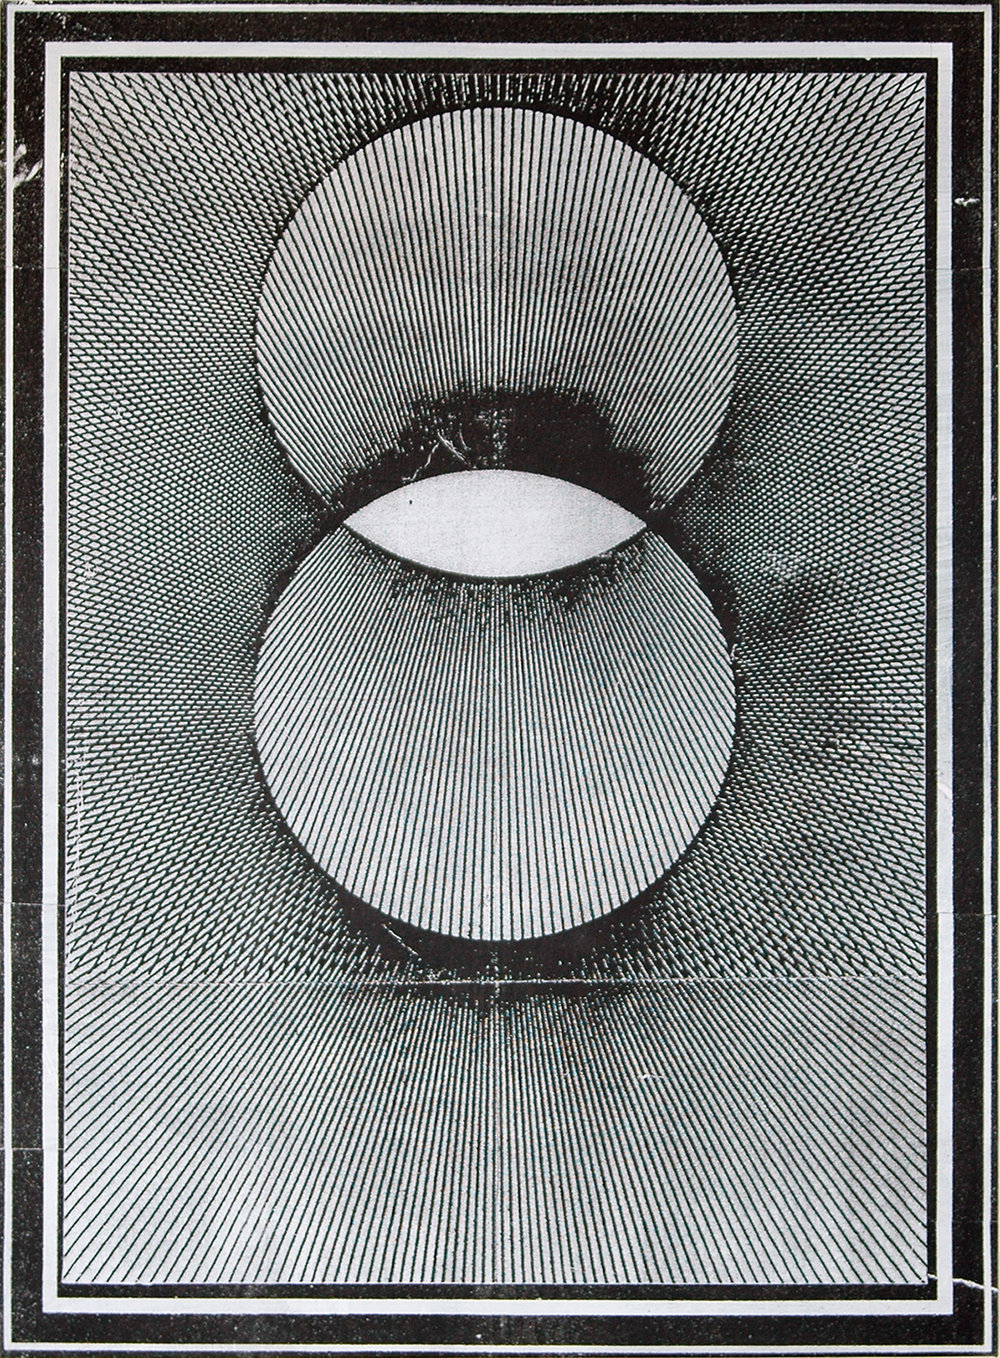 "GWENAËL RATTKE   Projections II (black & white) , 2012, acrylic silkscreen on canvas with hand working, 49"" x 35.5"""